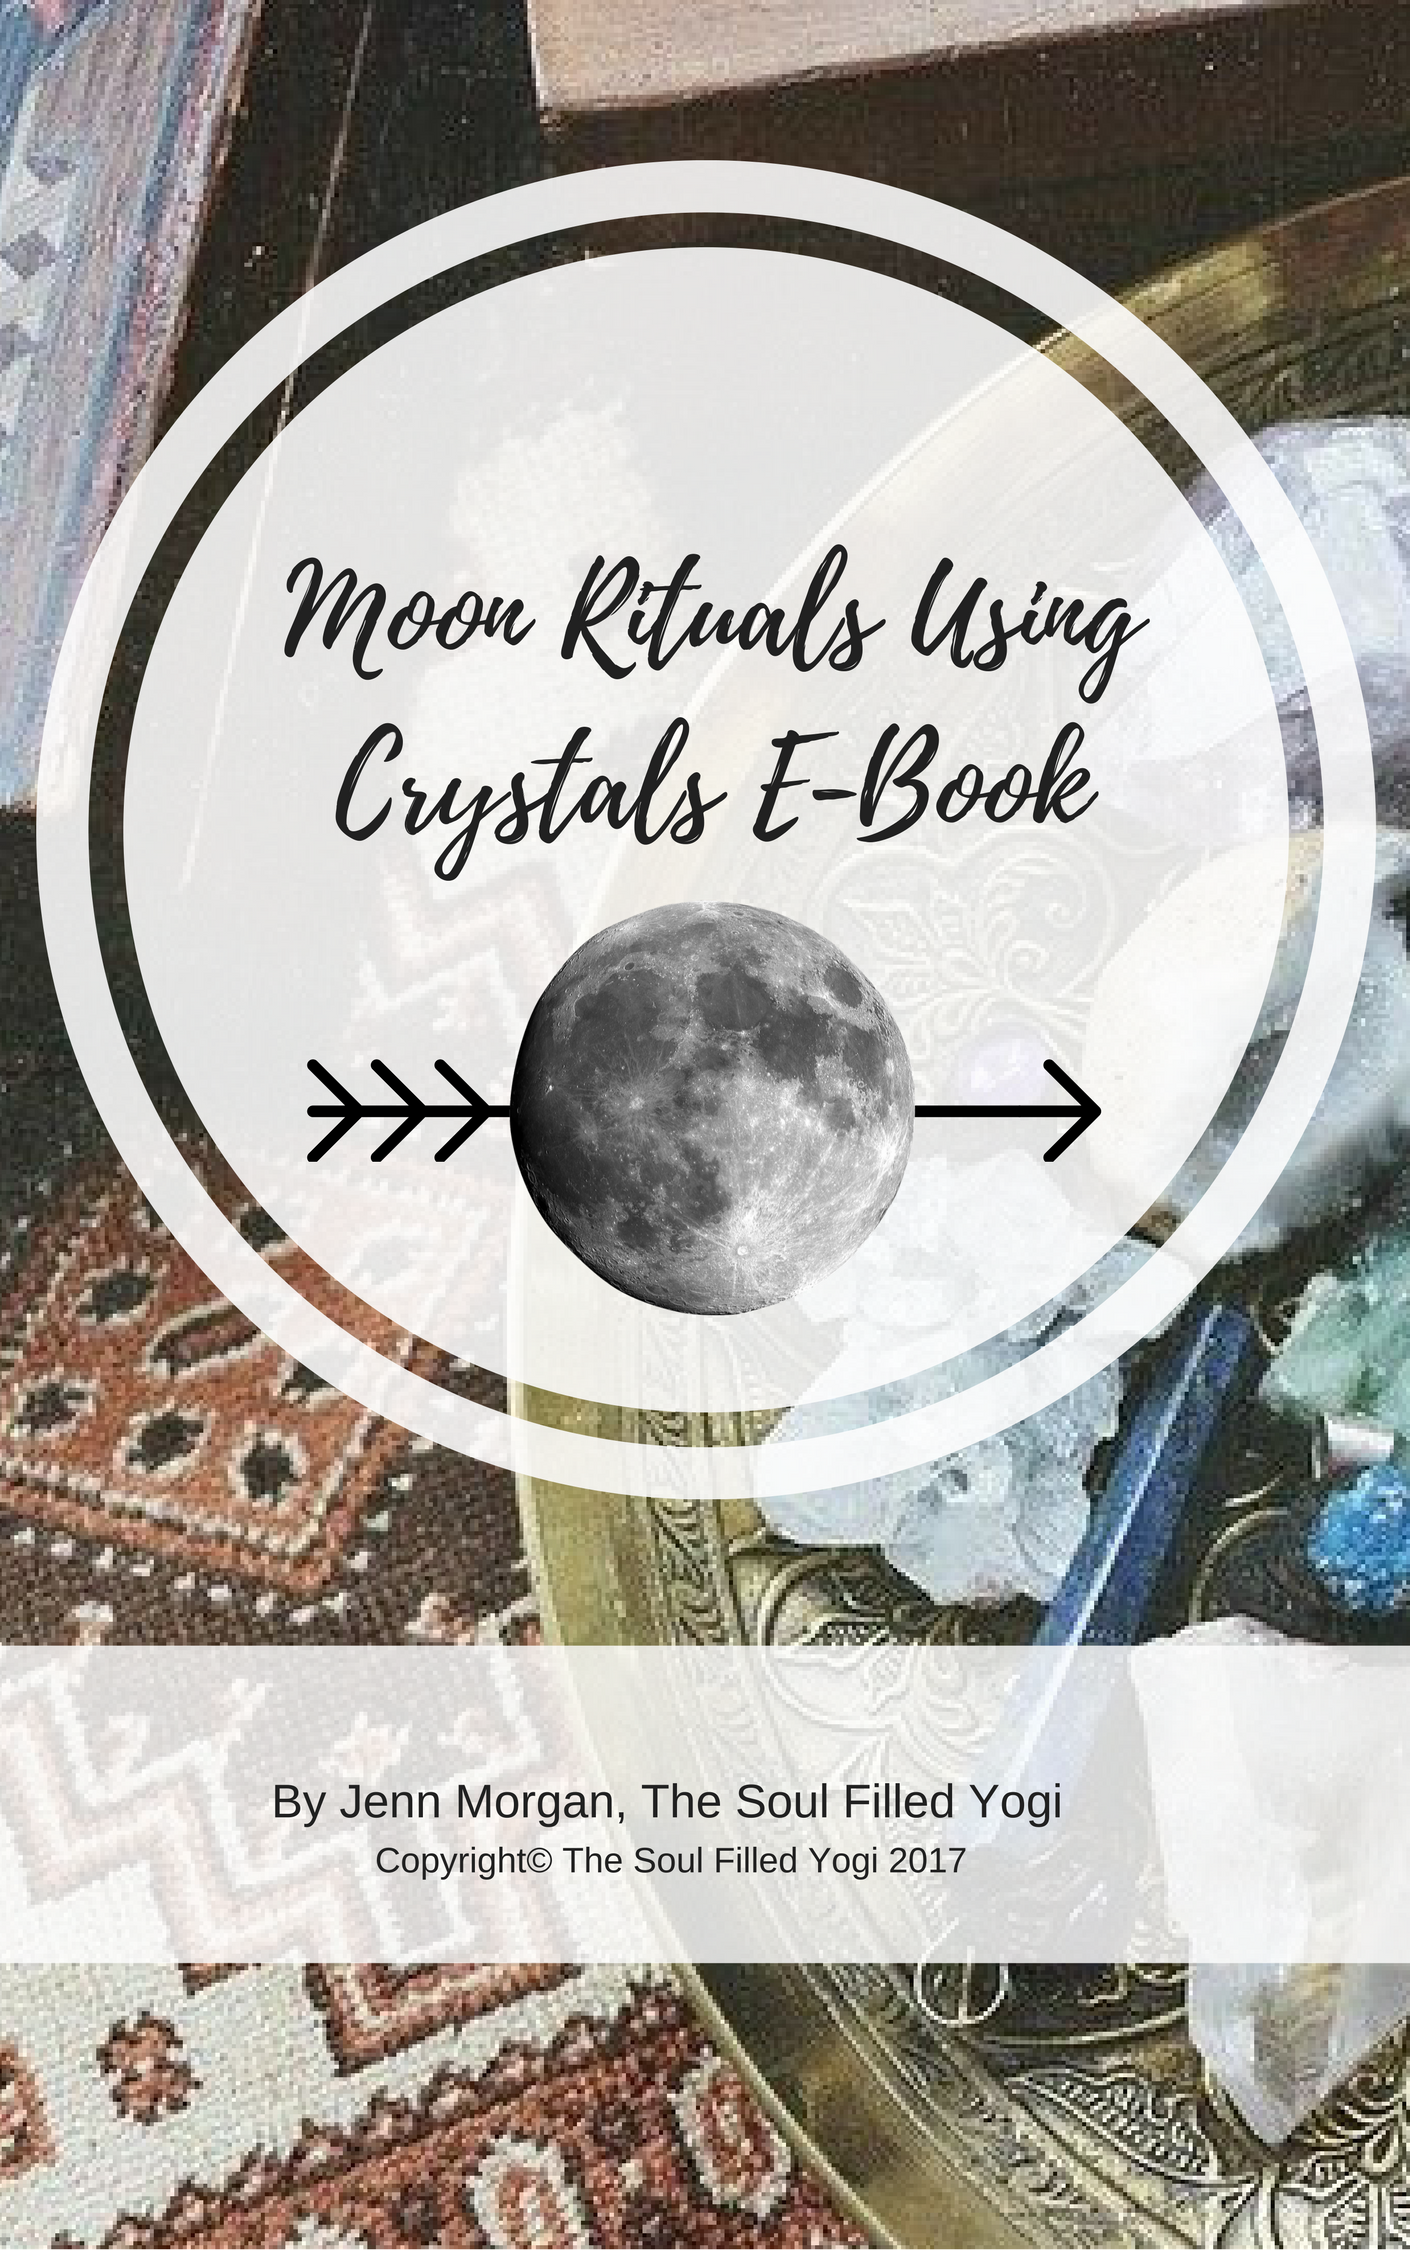 Moon Rituals Using Crystals E-Book (Instant Download) 00005